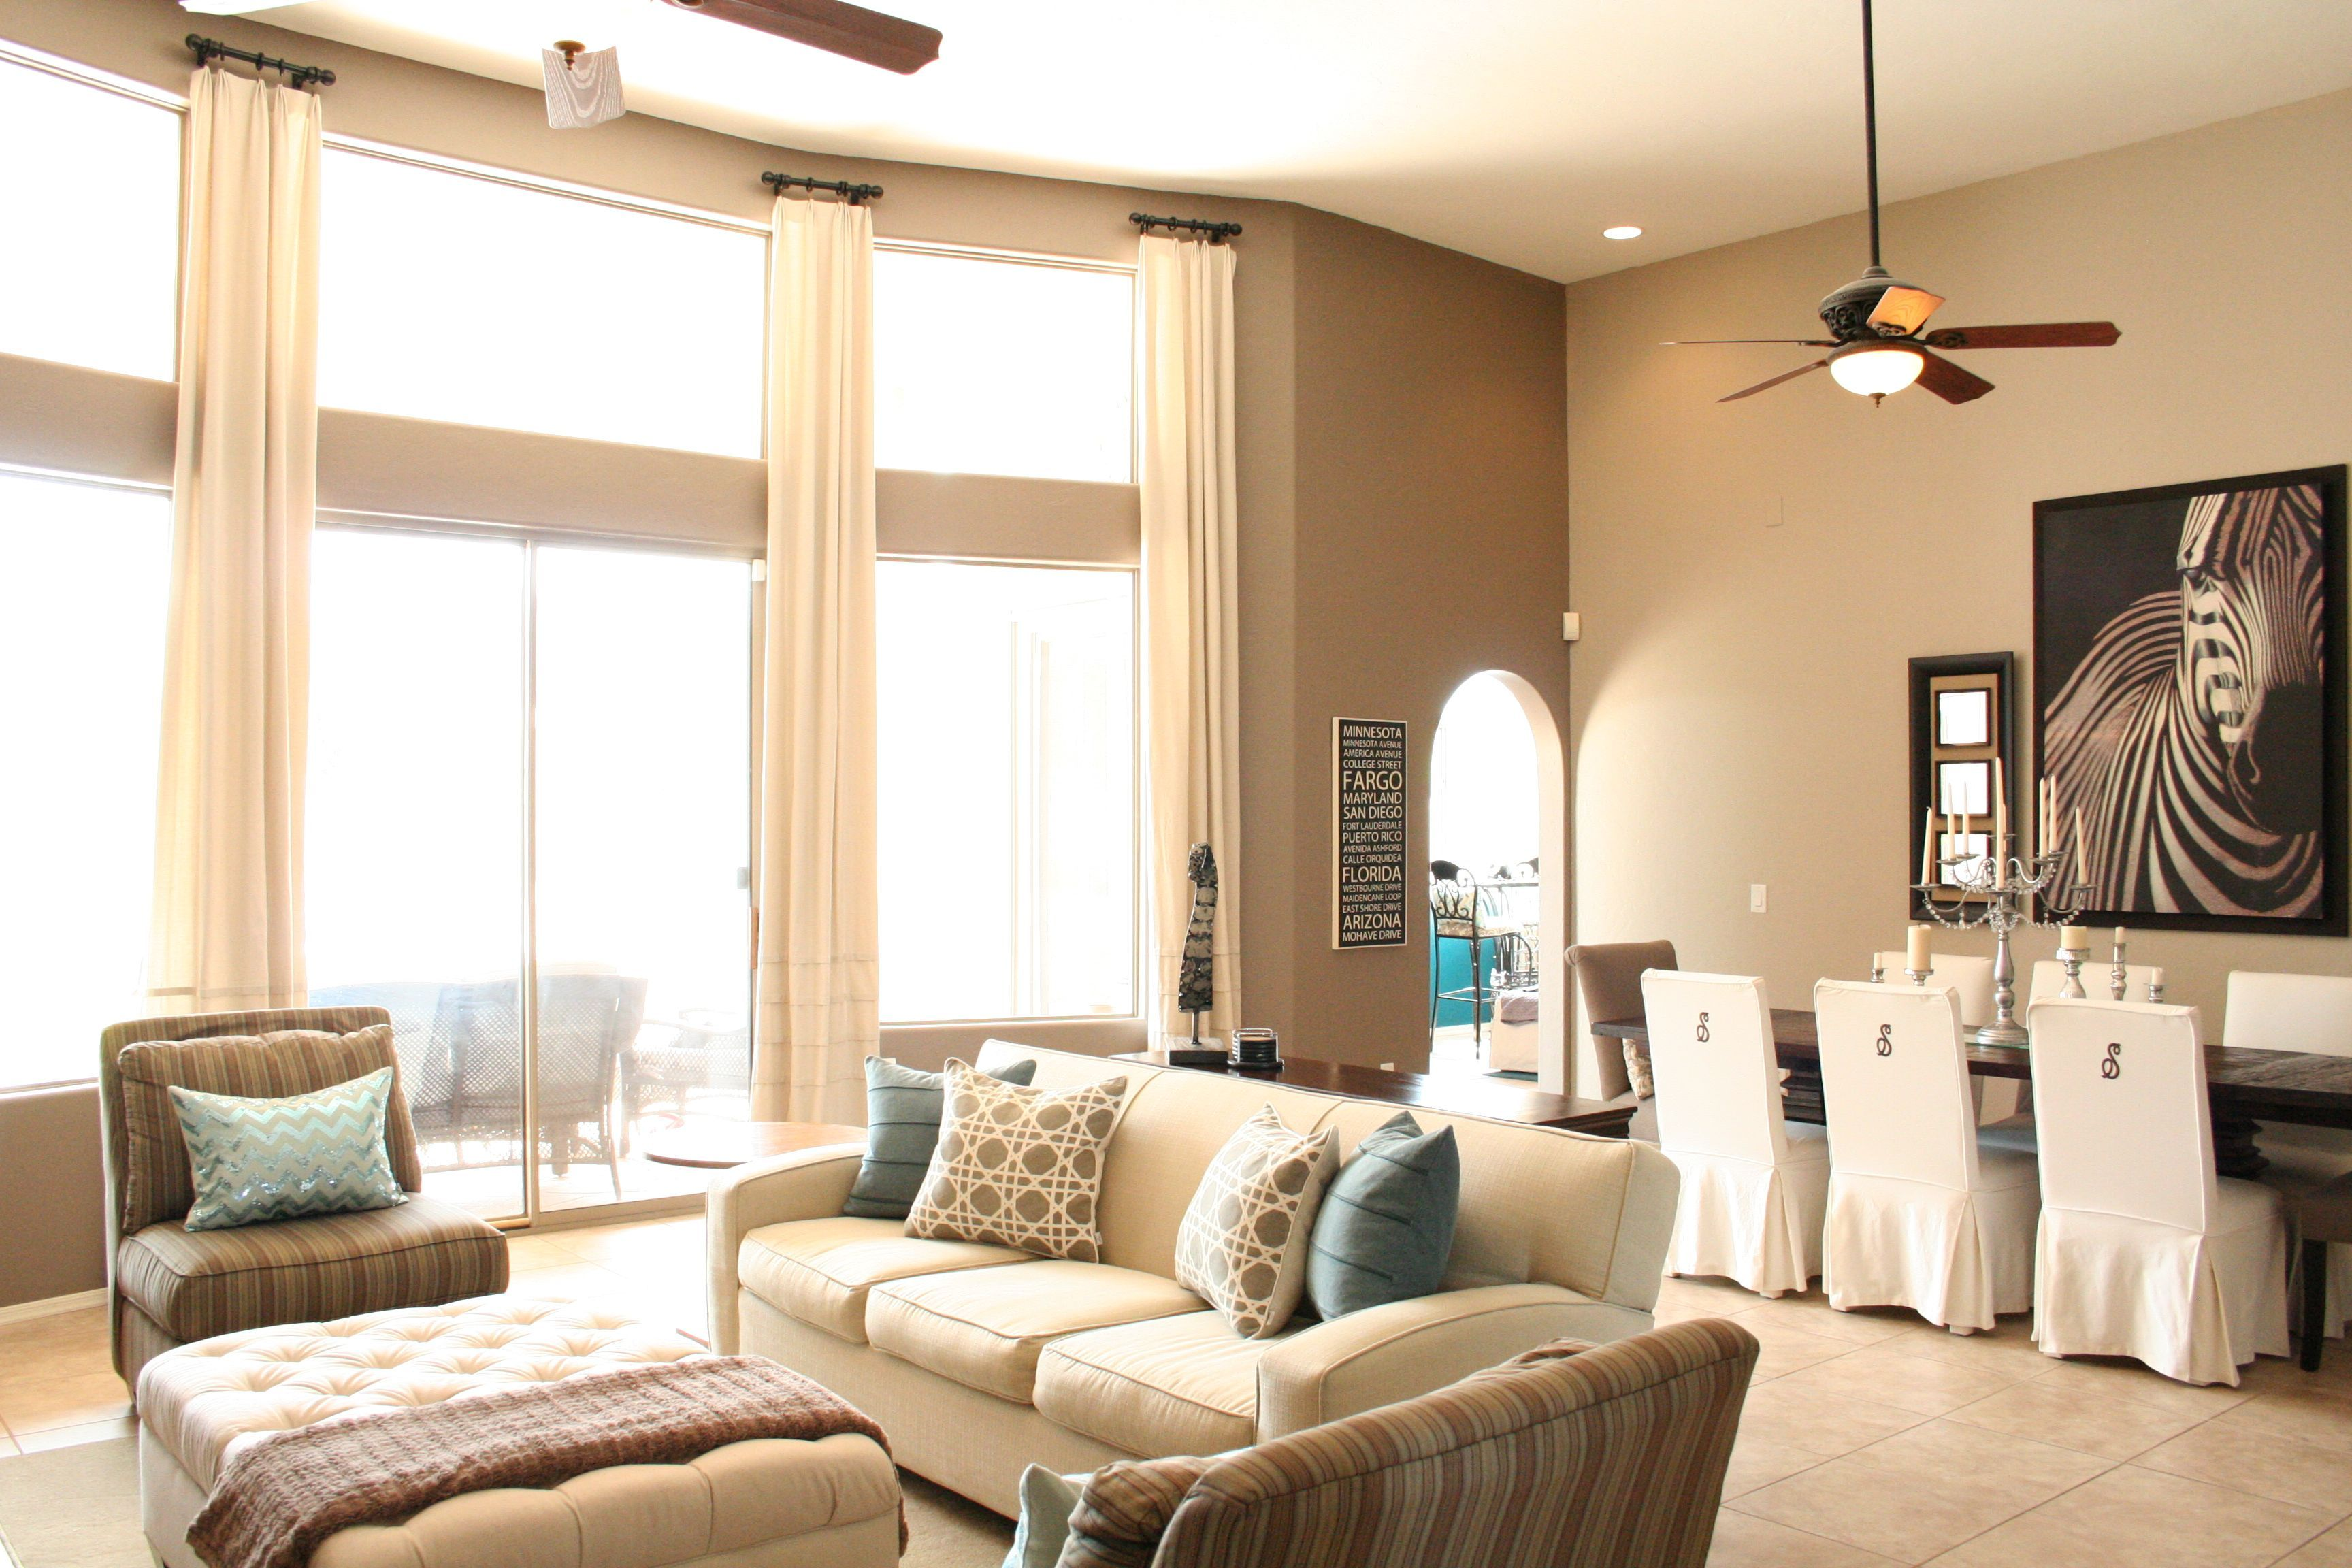 My Living Room Sherwin Williams Versatile Gray And Spaulding Gray Perfect Greige Greige Living Room Perfect Living Room Paint Colors For Living Room #perfect #greige #living #room